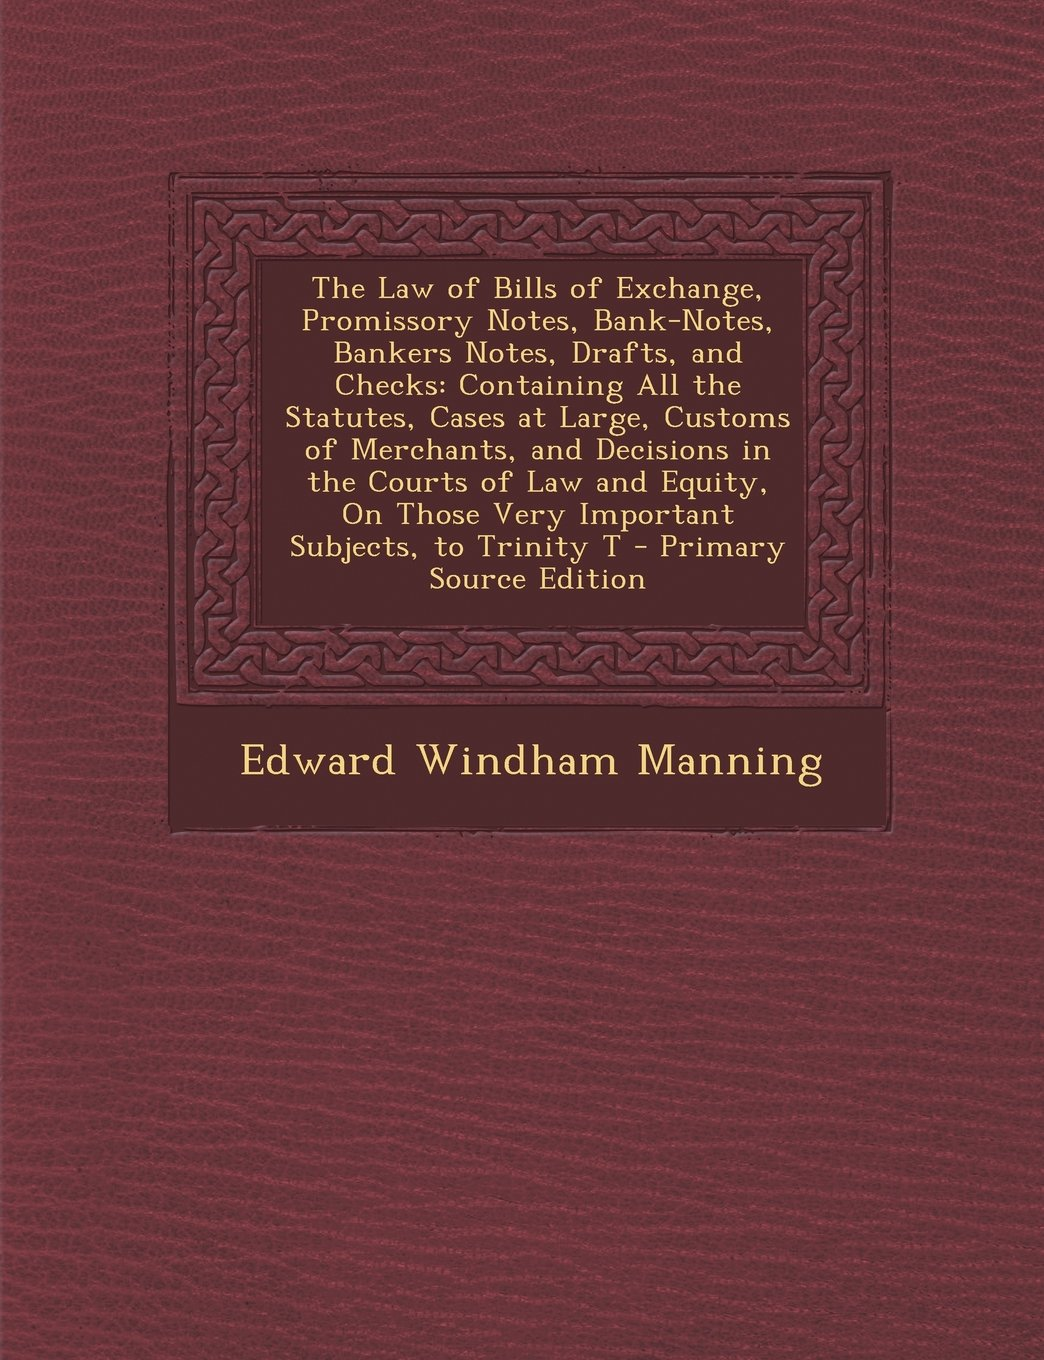 The Law of Bills of Exchange, Promissory Notes, Bank-Notes, Bankers Notes, Drafts, and Checks: Containing All the Statutes, Cases at Large, Customs of ebook